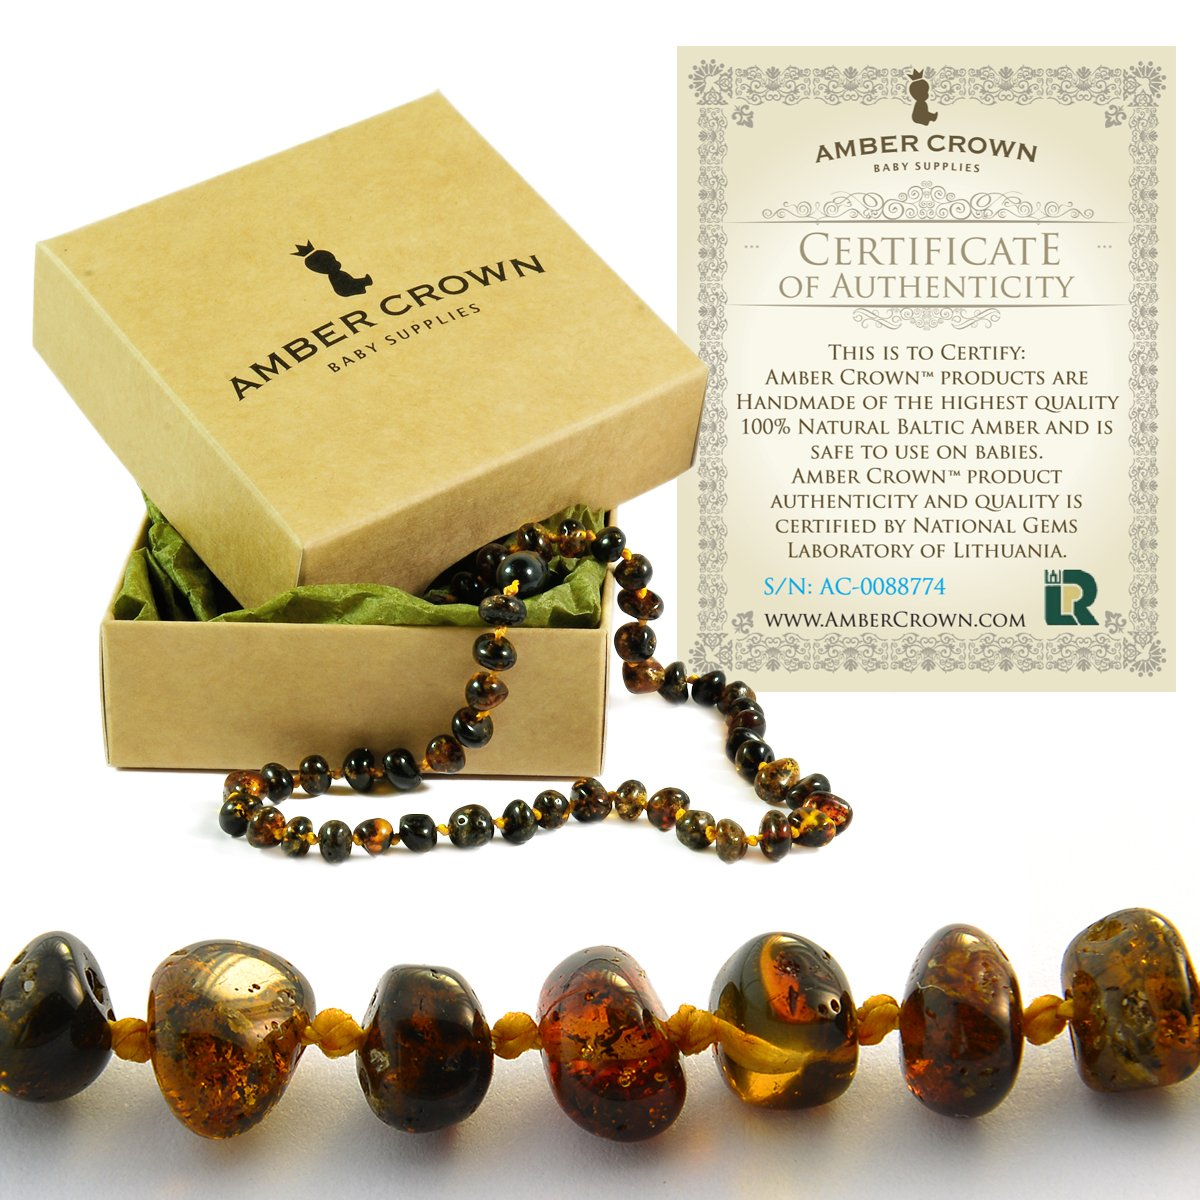 Baltic Amber Teething Necklace for Babies - Anti Inflammatory, Drooling and Teething Pain Reducing Natural Remedy - Polished Greenish Certified Baltic Amber Beads